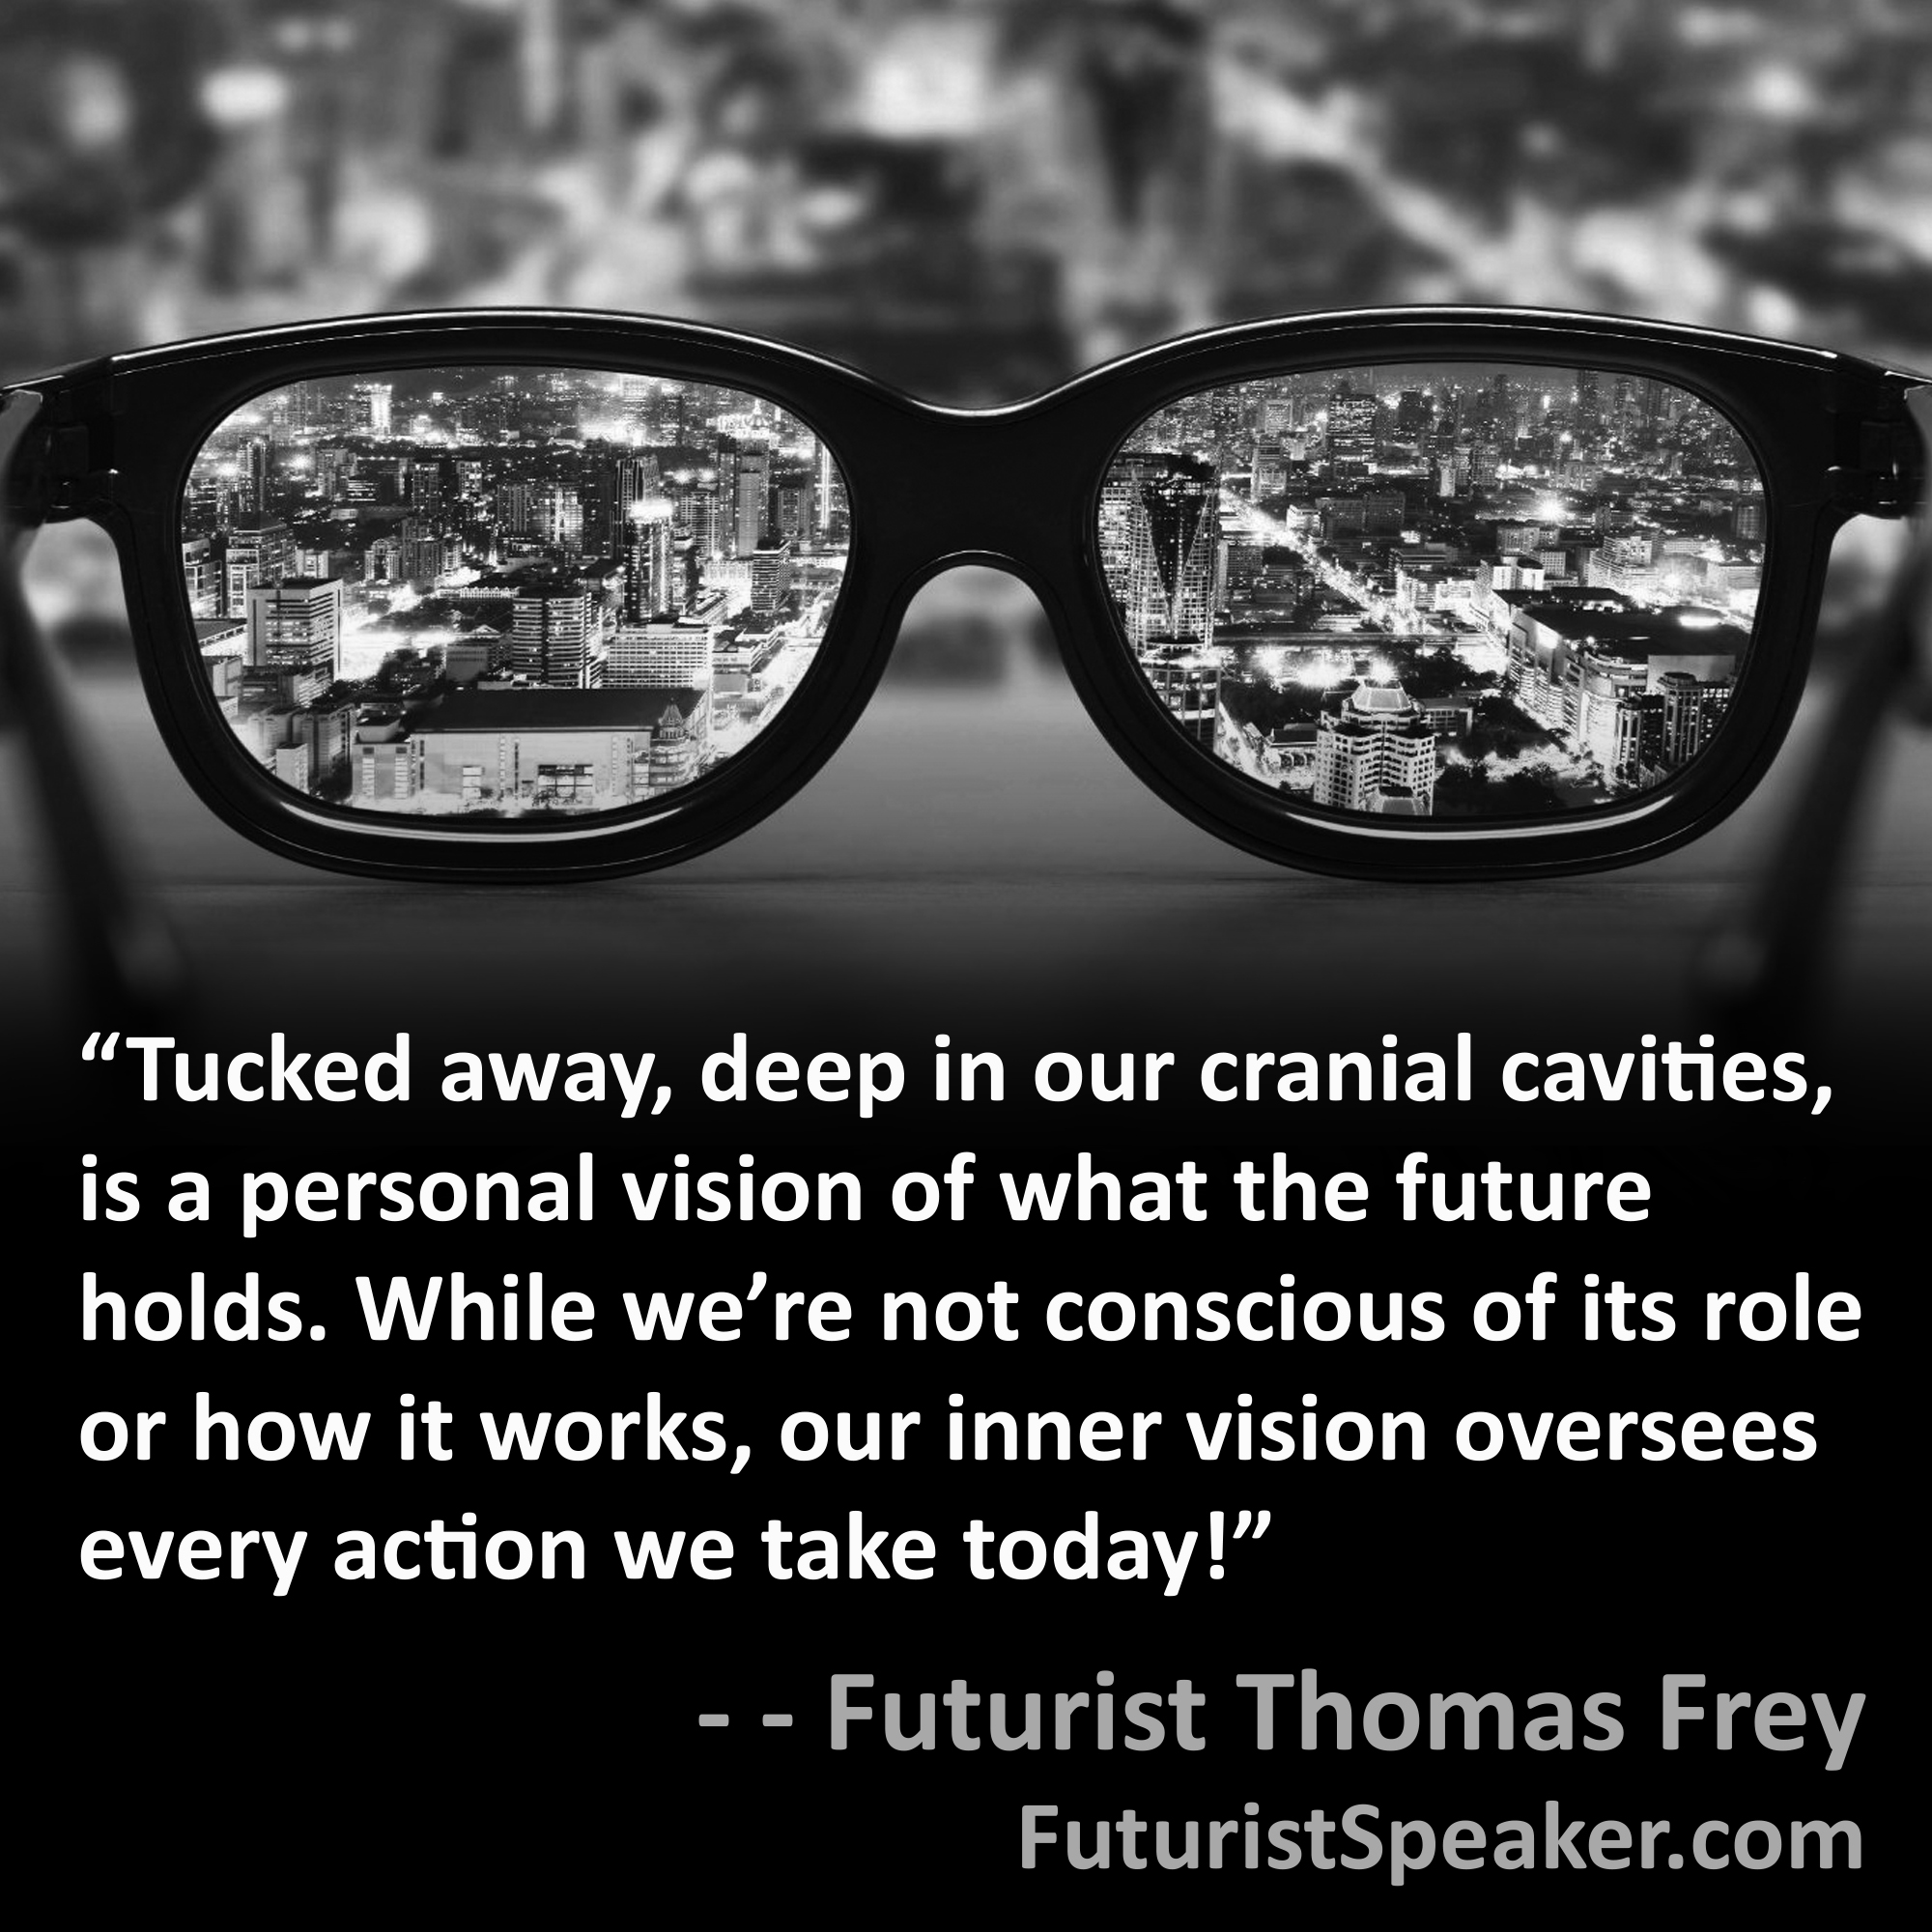 Thomas Frey Futurist Speaker Famous Quote: Tucked away, deep in our cranial cavities, is a personal vision of what the future holds. While we are not conscious of its role or how it works, our inner vision oversees every action we take today.